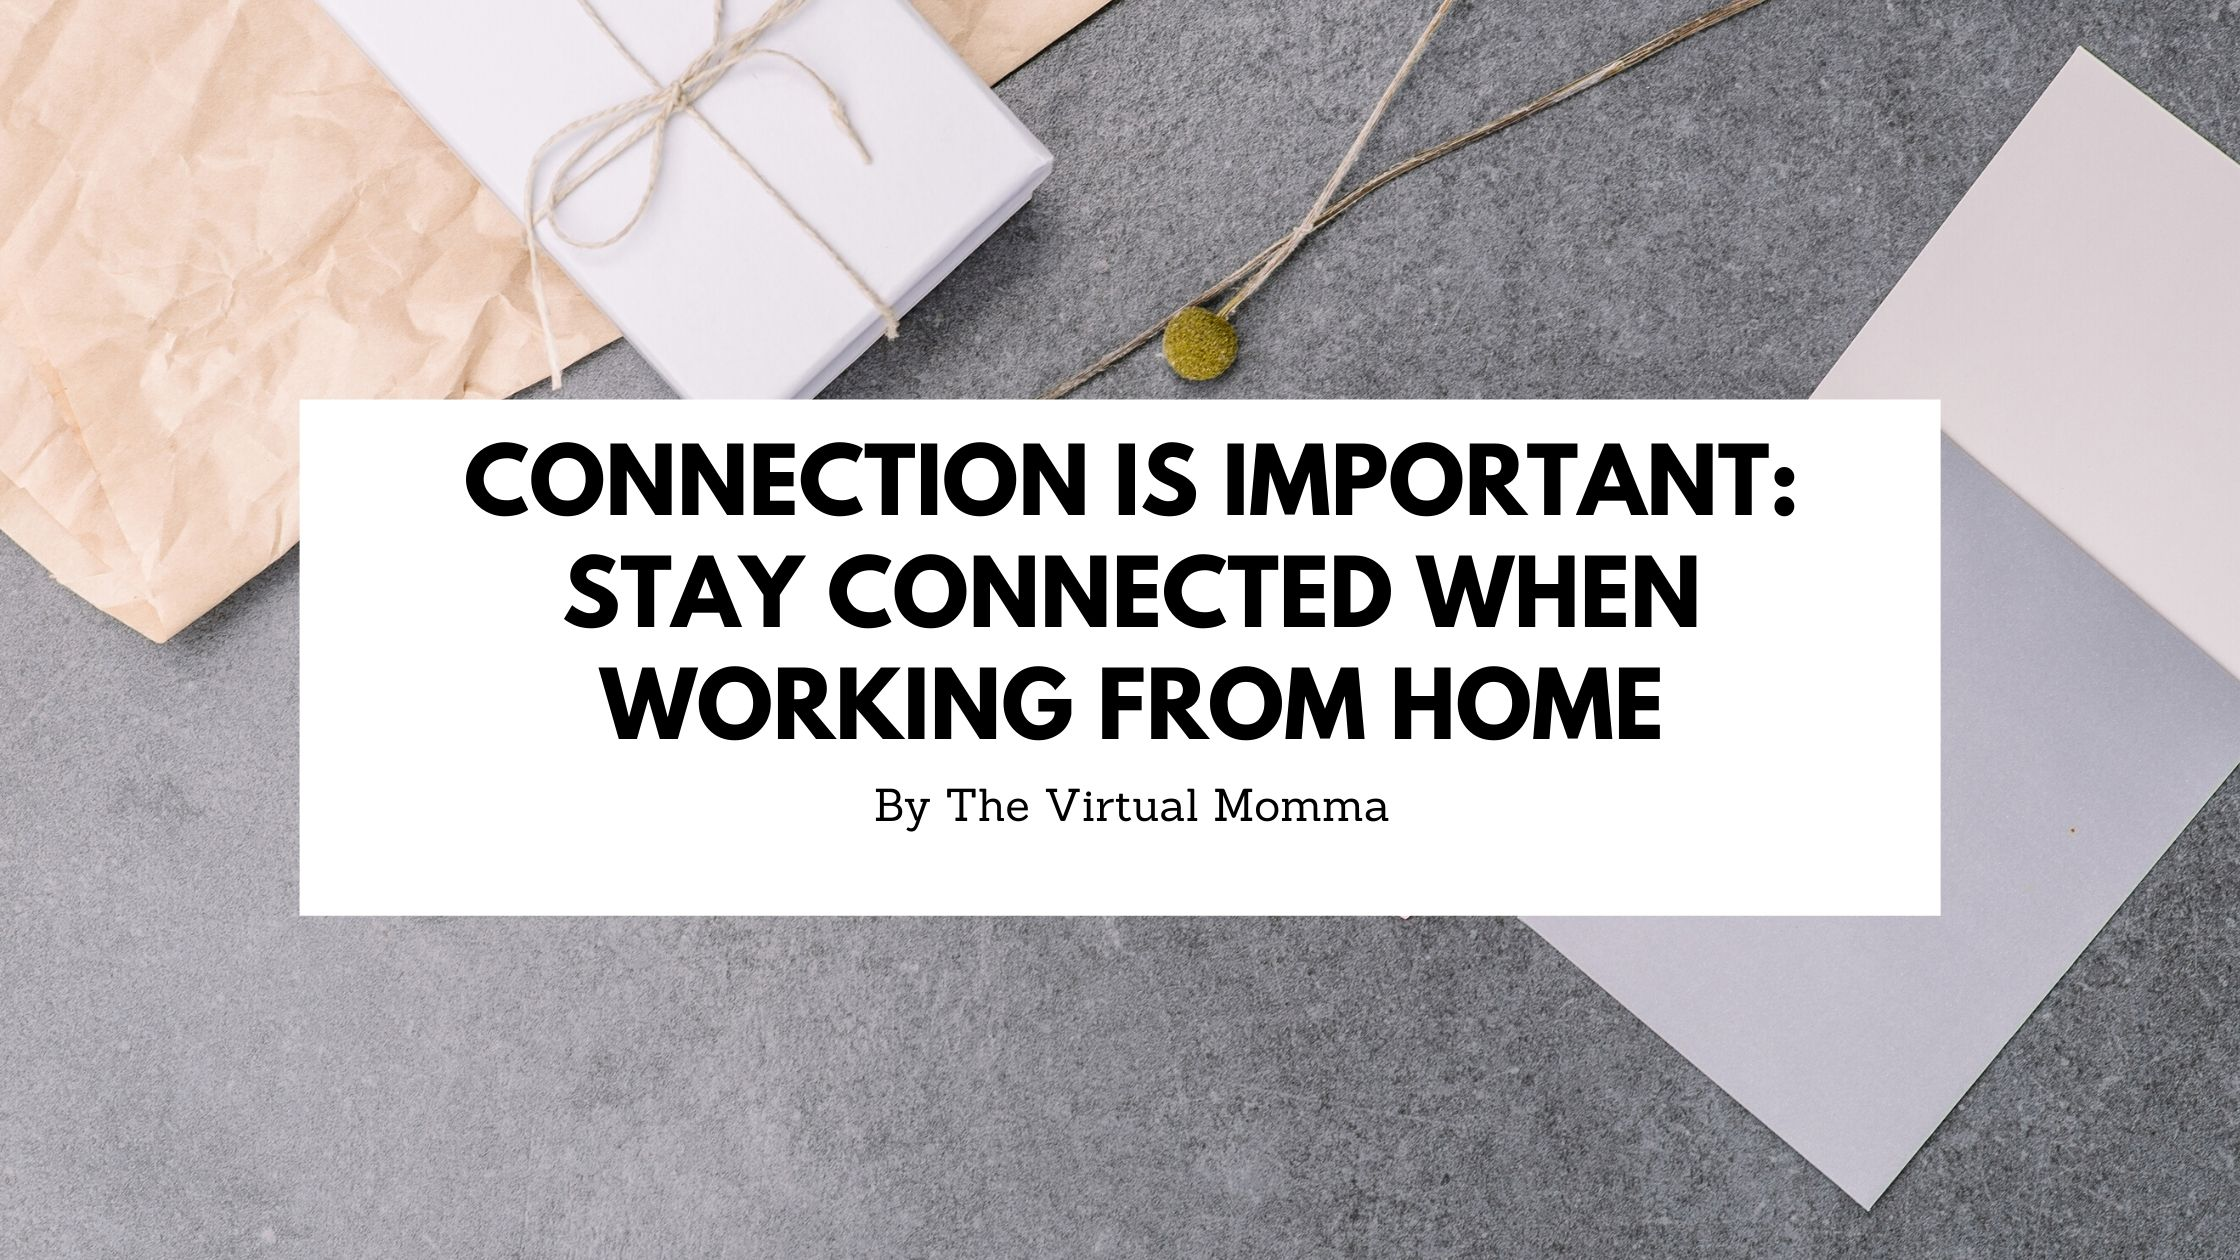 Connection while working from home